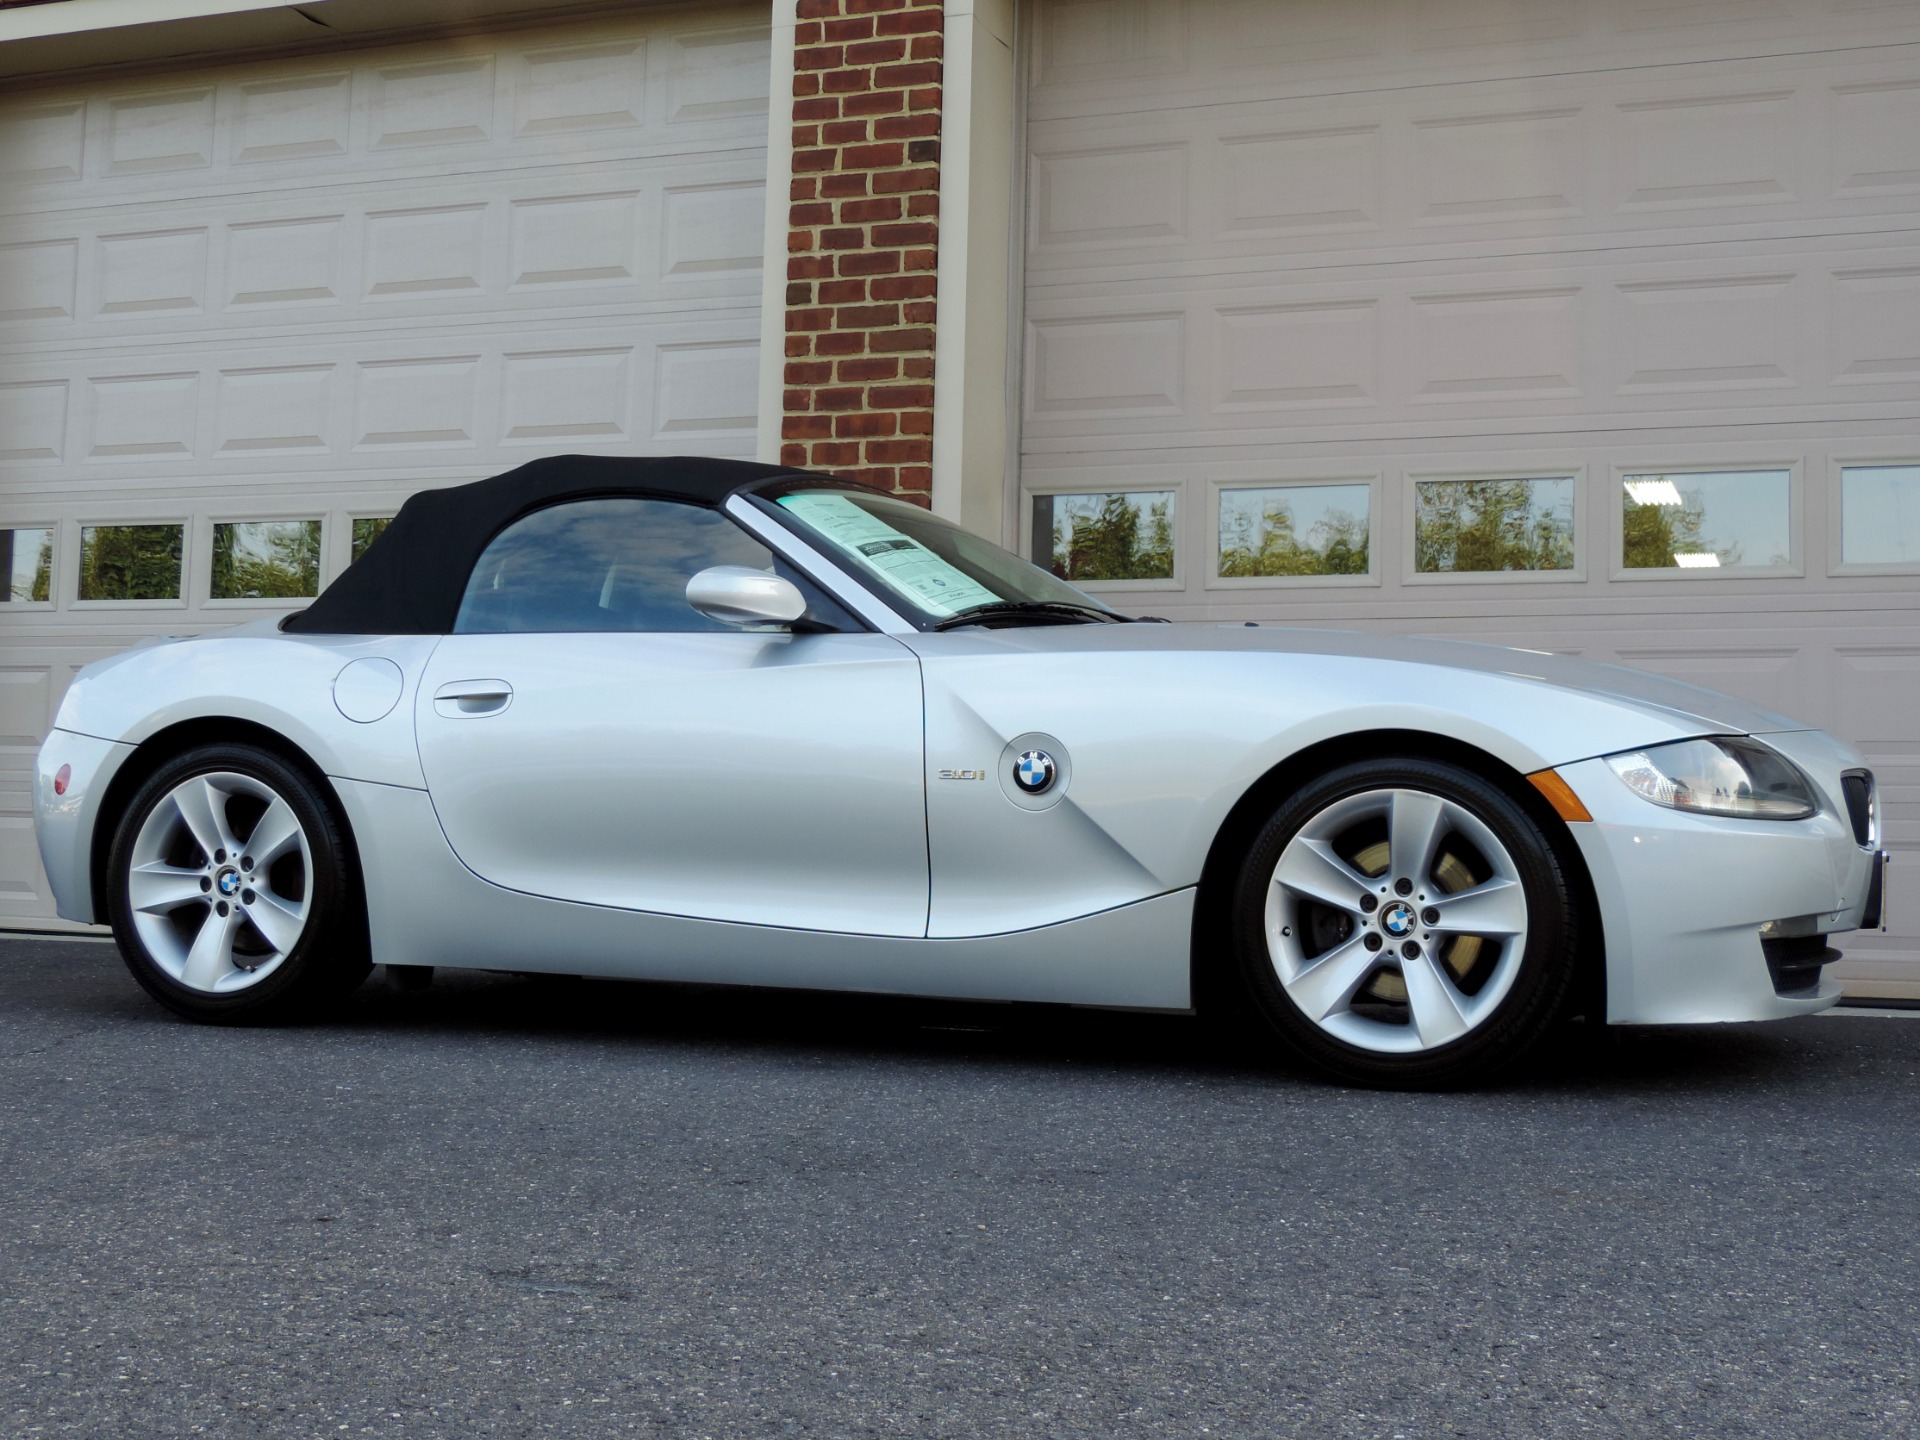 2006 Bmw Z4 Roadster 3 0i Stock W69654 For Sale Near